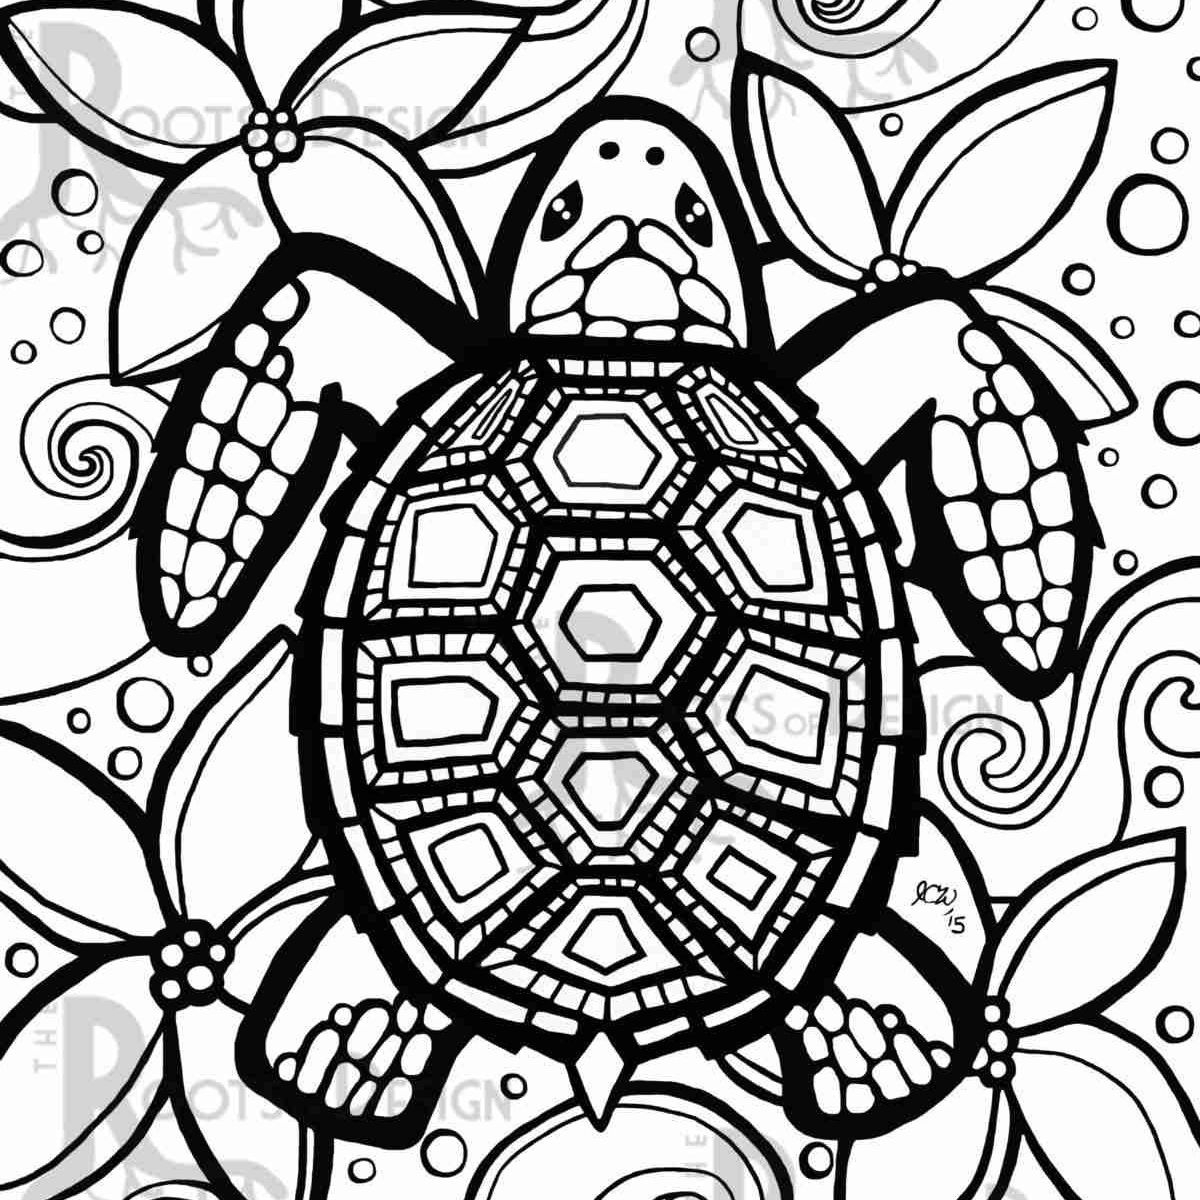 - 21+ Wonderful Image Of Sea Turtle Coloring Page - Birijus.com